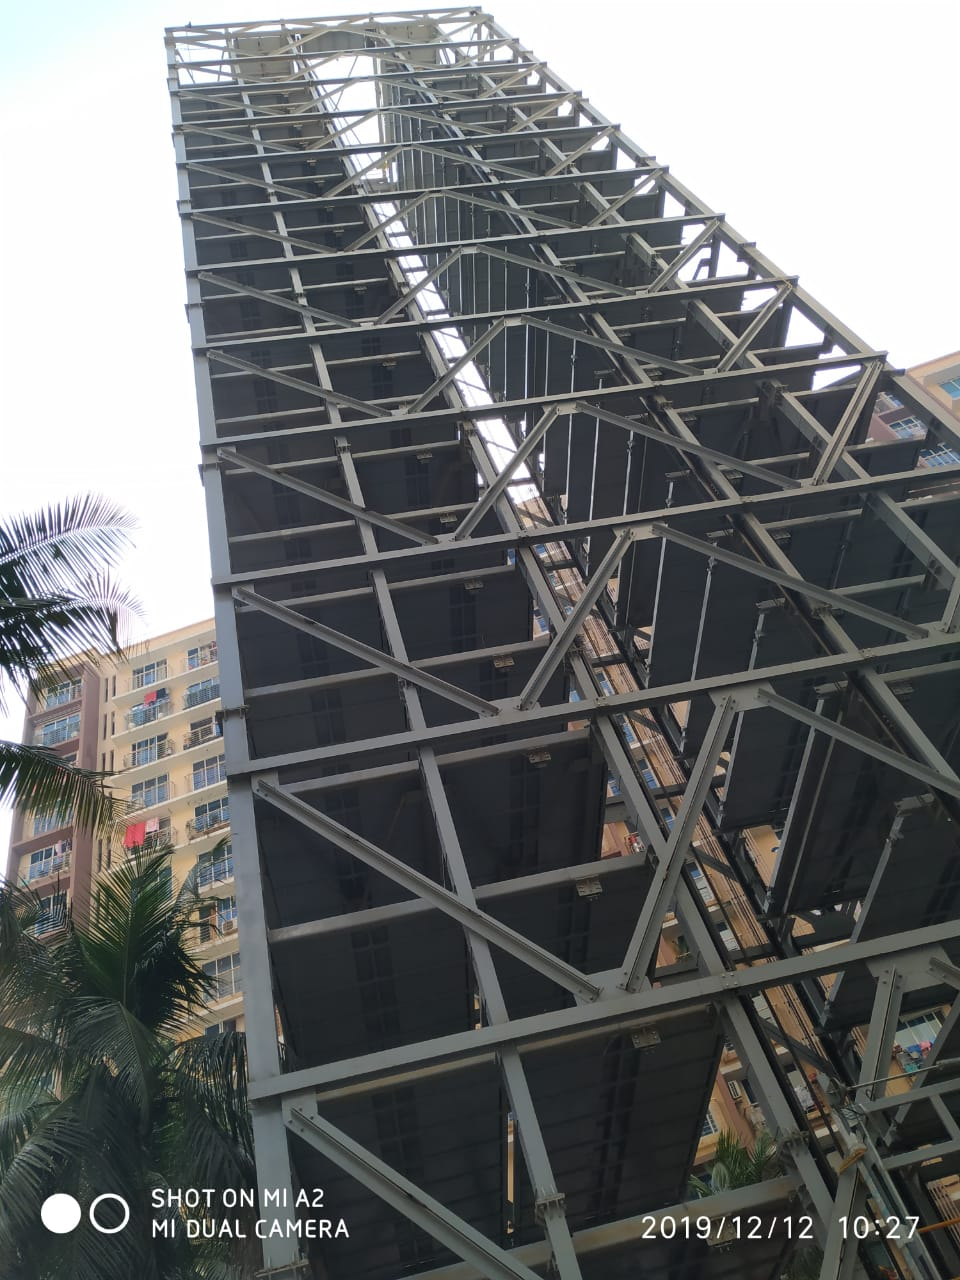 Fully Automatic Tower Parking System